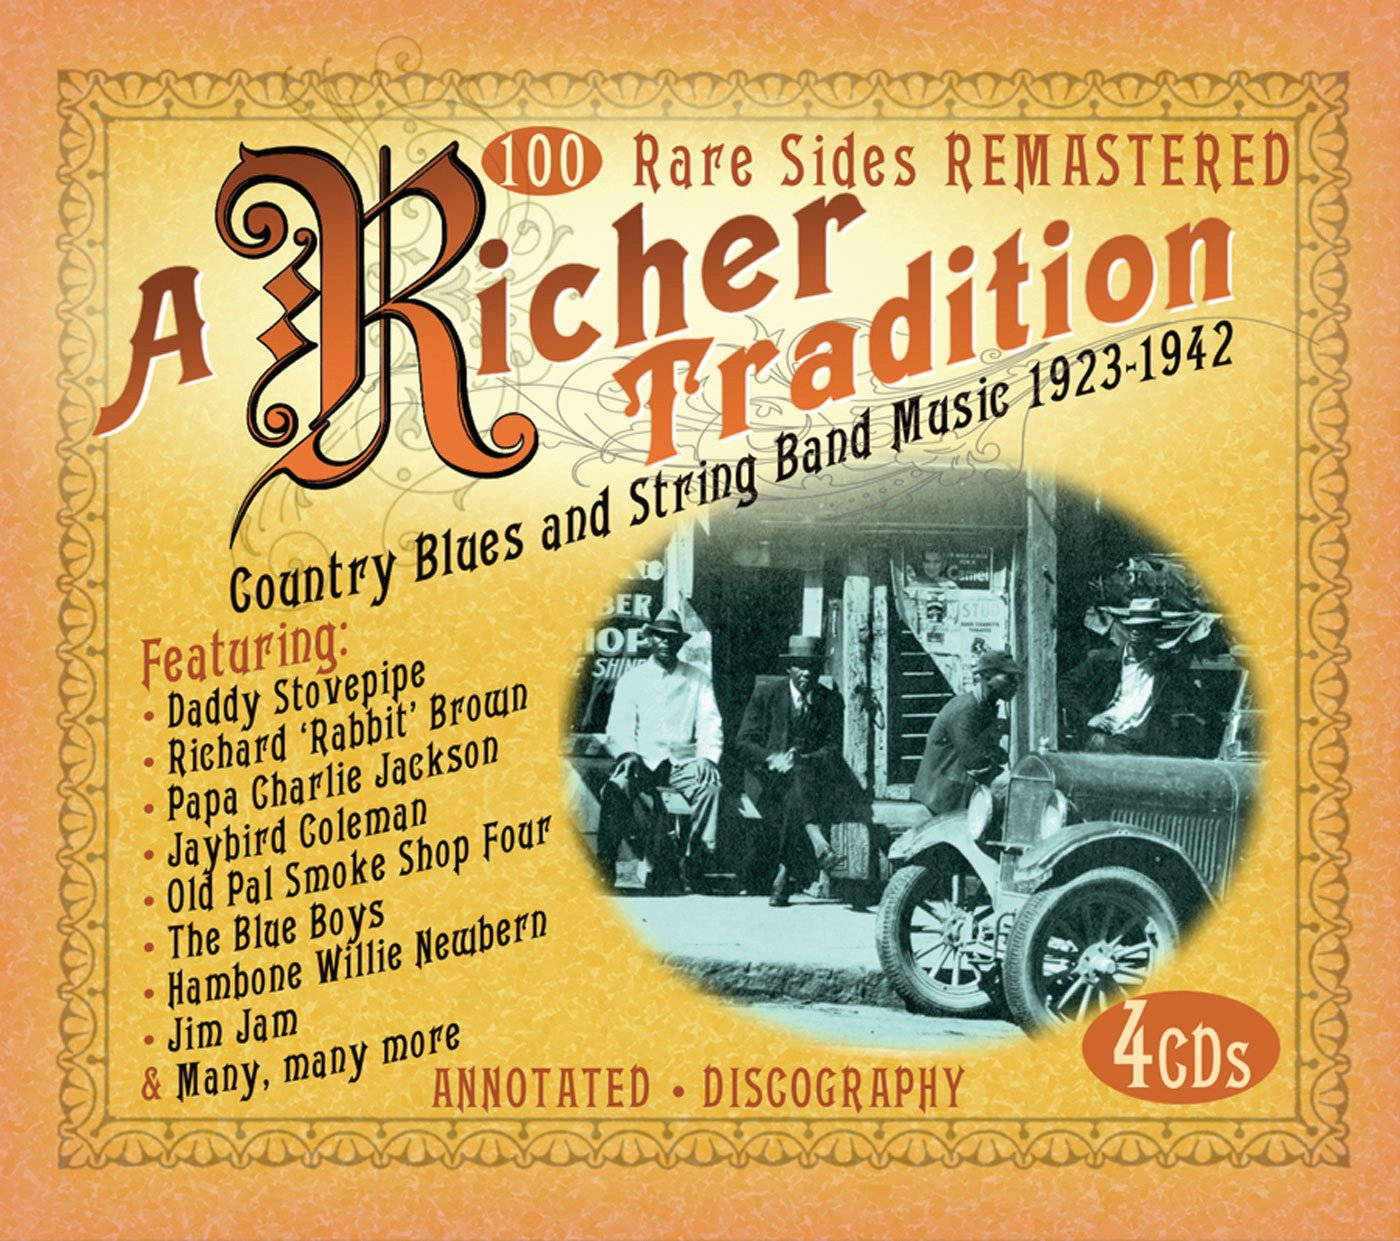 A Richer Tradition: Country Blues and String Band Music 1923-1942